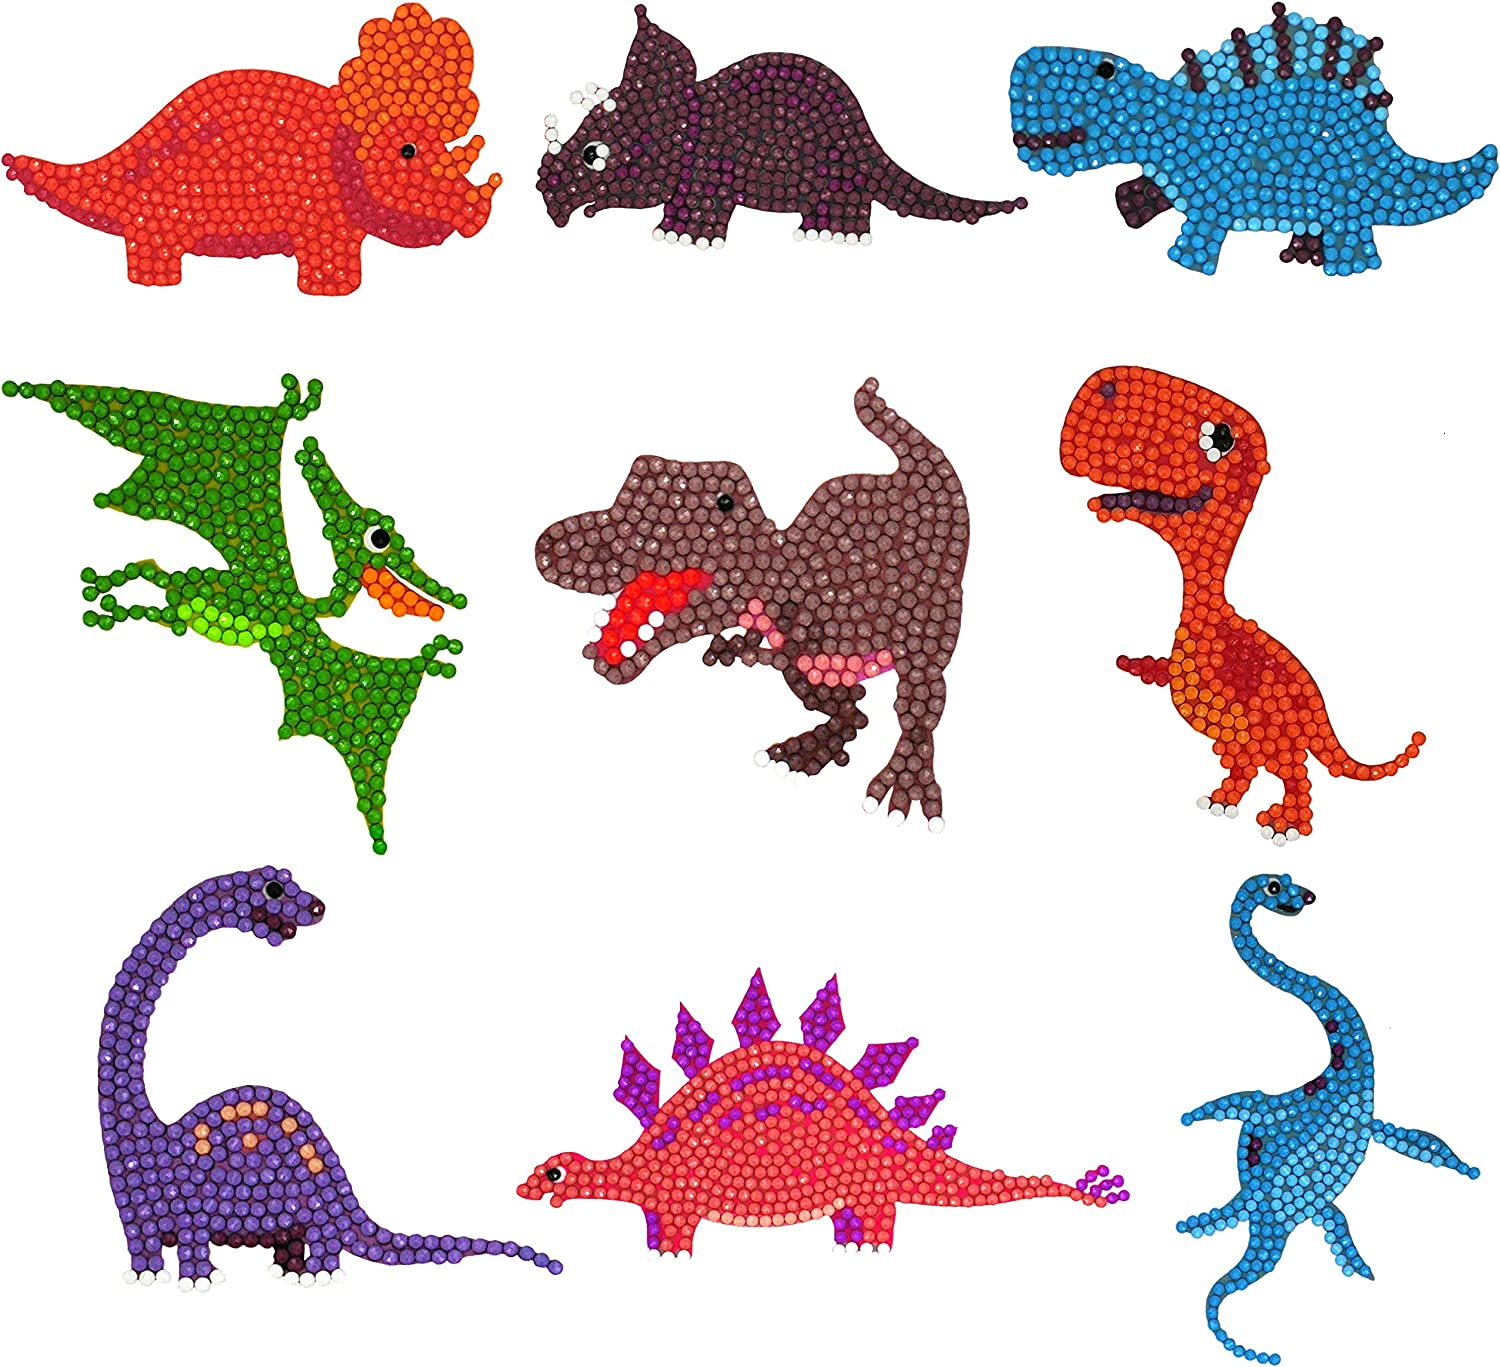 Labeol 18Pcs 5D Dinosaurs Diamond Painting Stickers Kits for Kids Easy to DIY Creative Diamond Dotz Mosaic Sticker Craft by Numbers Kits for Kids and Adult Beginners Dinosaur